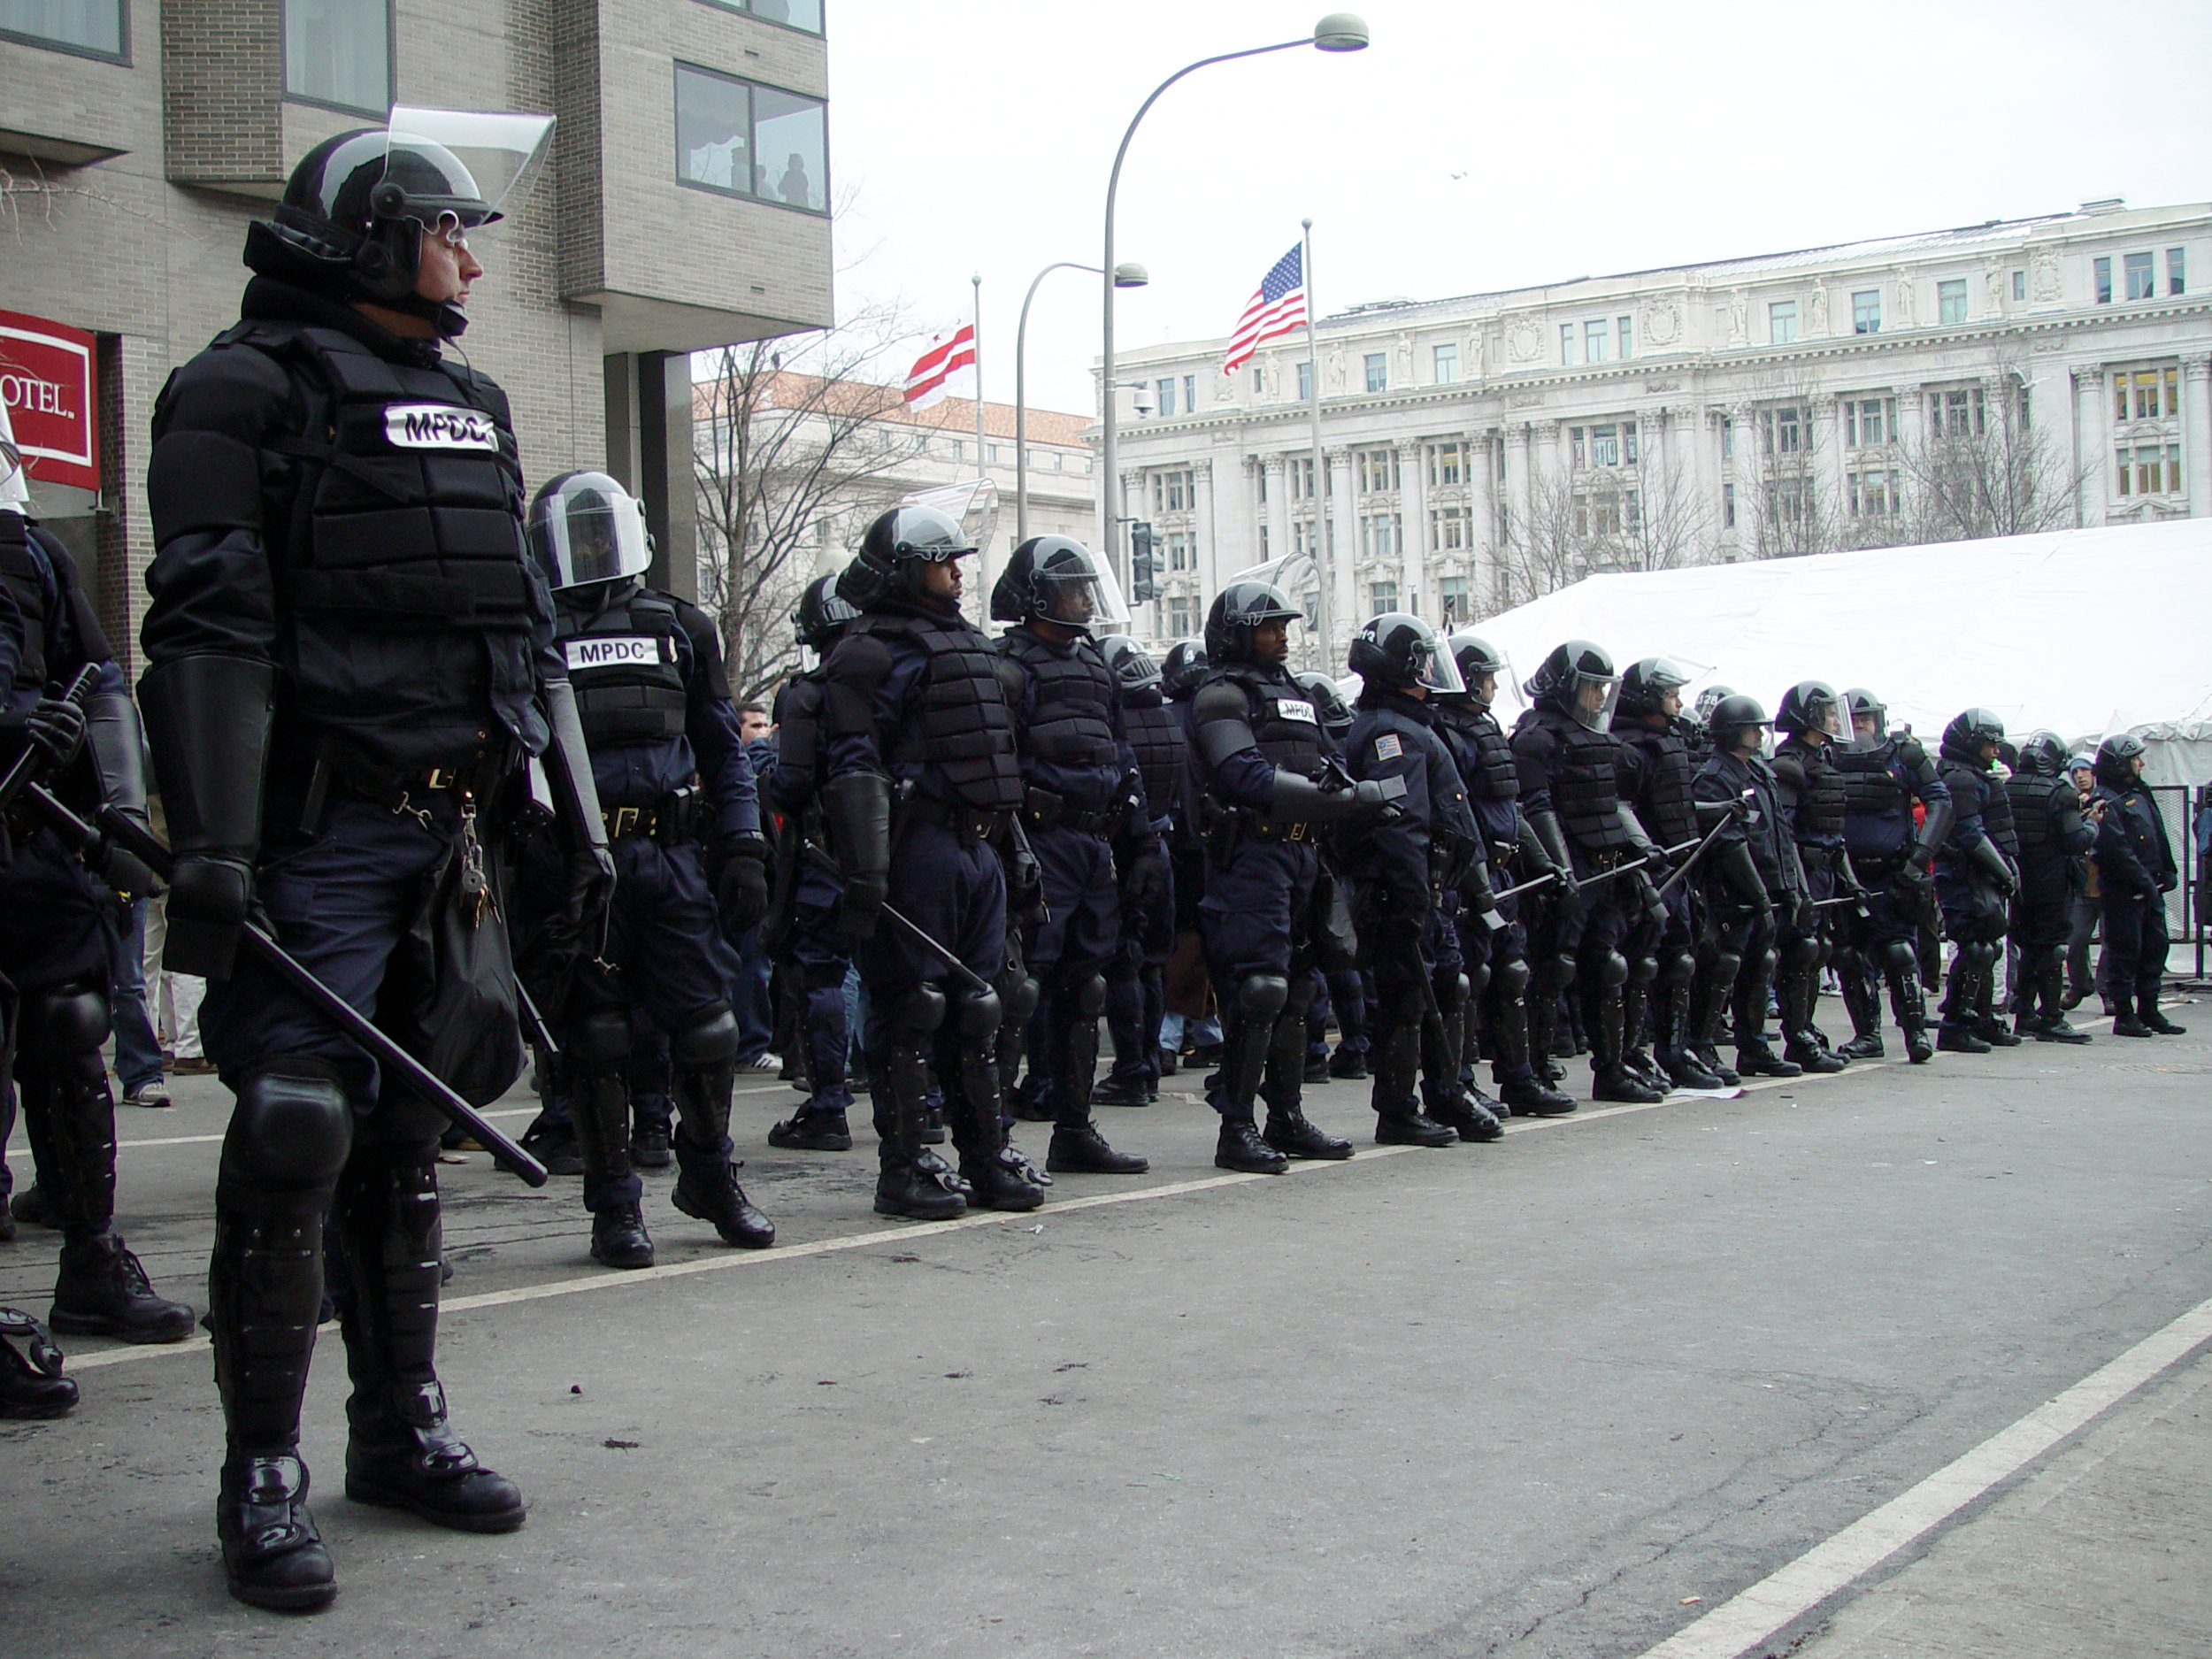 The riot squad is restless...